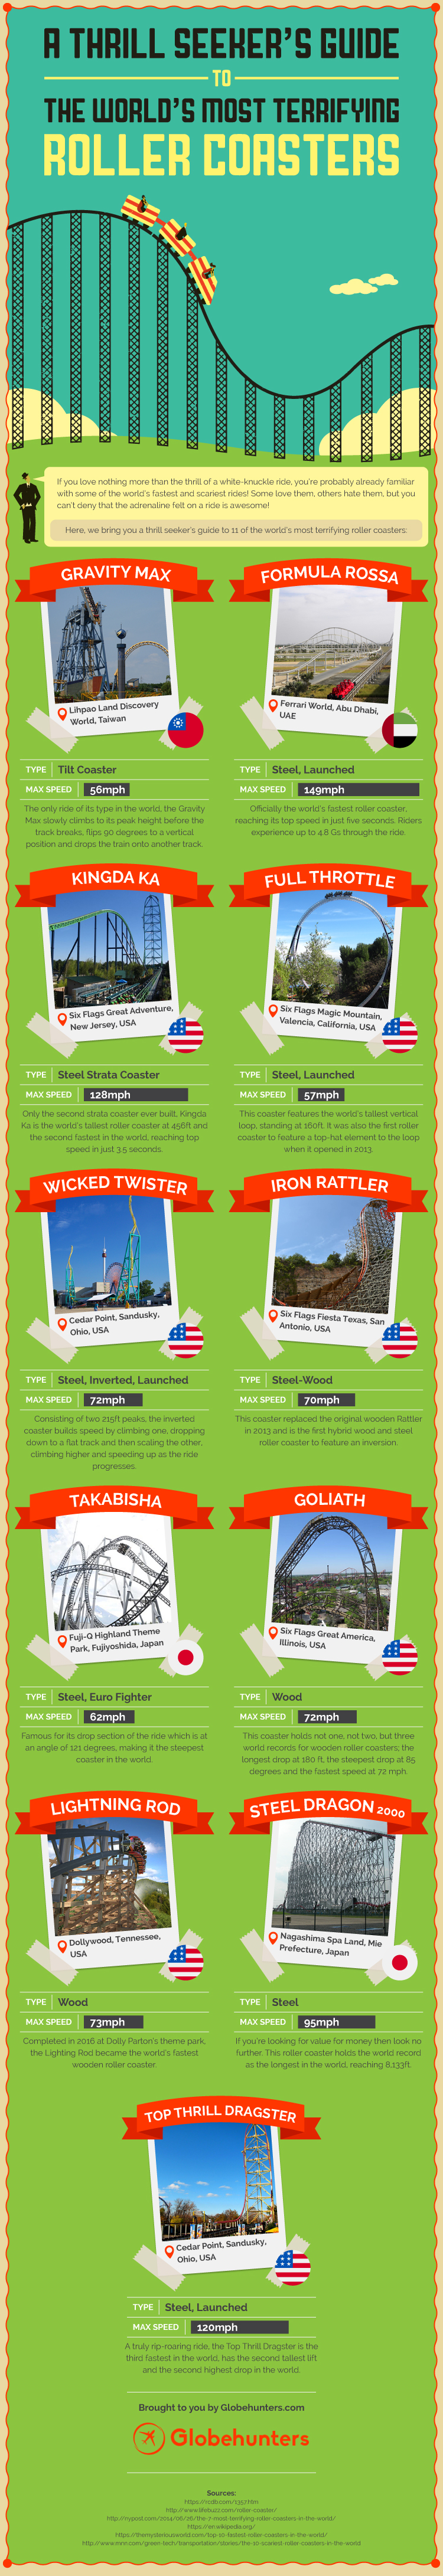 A Thrill Seeker's Guide To The World's Most Terrifying Roller Coasters [Infographic]